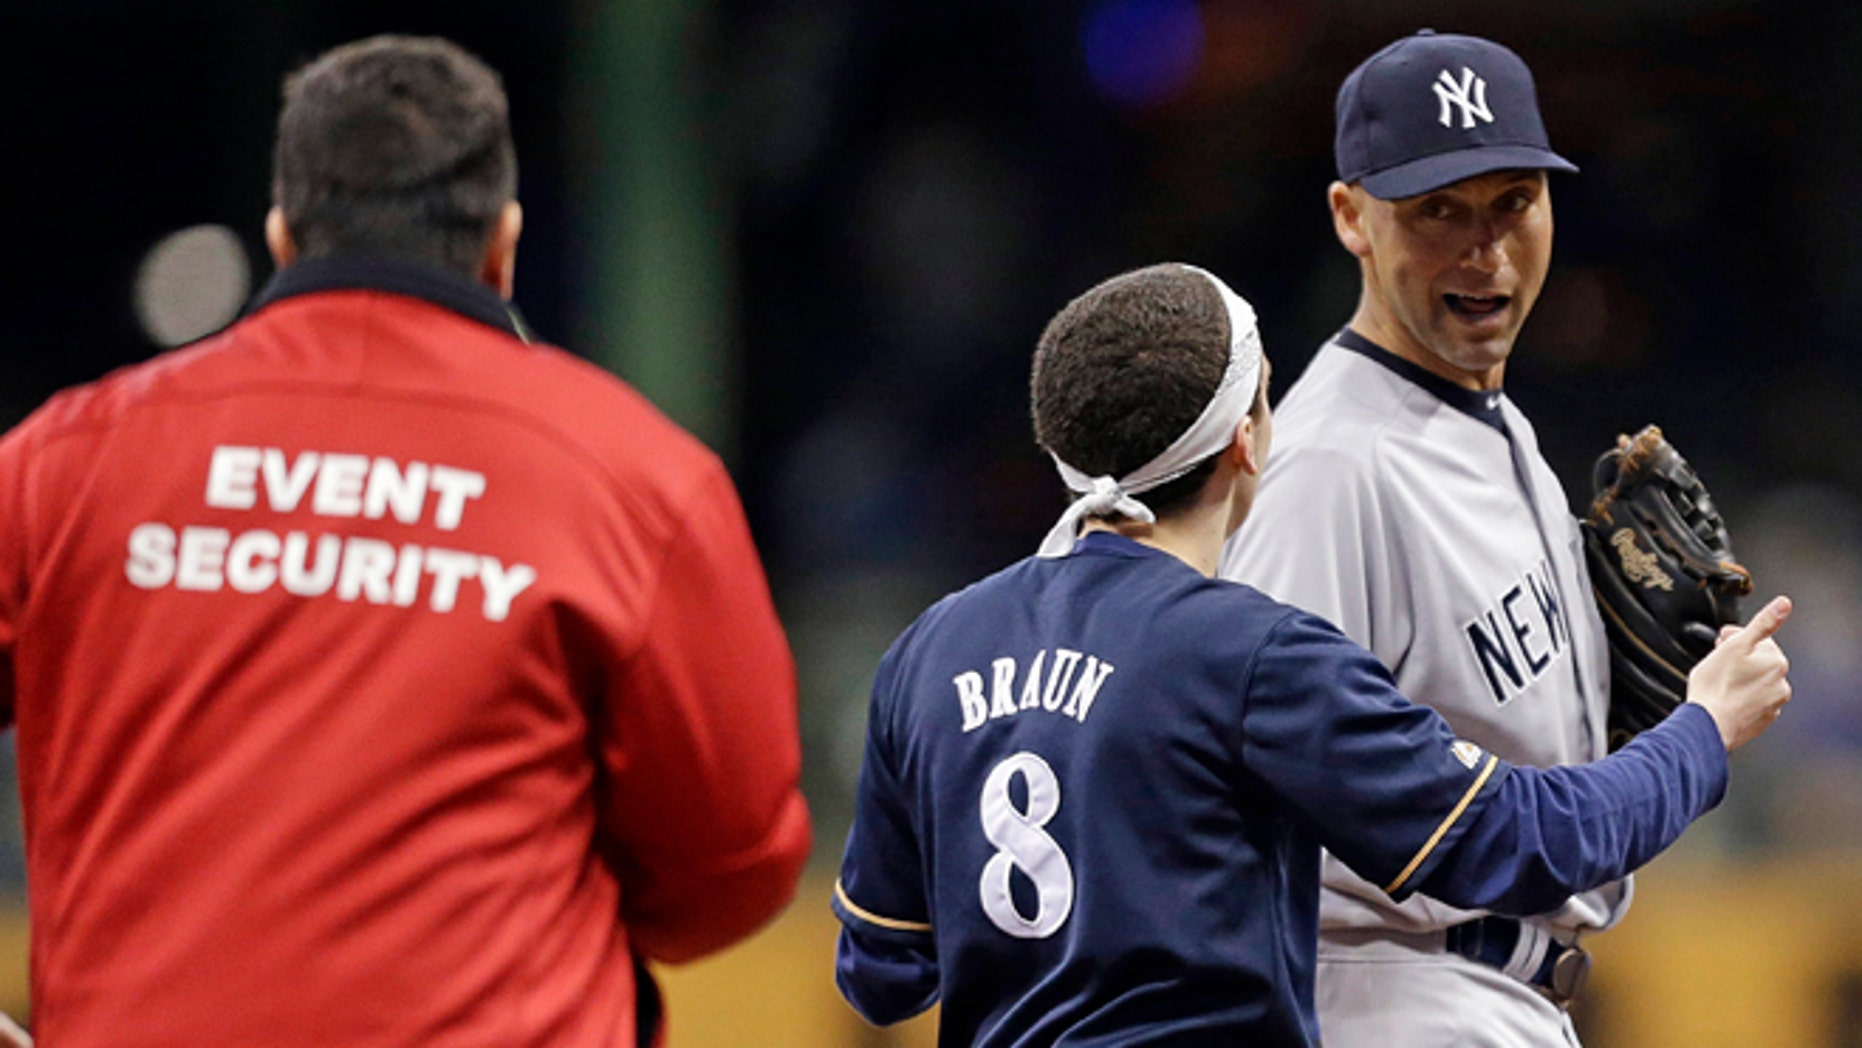 May 9: A fan runs out on the field to New York Yankees' Derek Jeter in the sixth inning of a baseball game against the Brewers in Milwaukee.